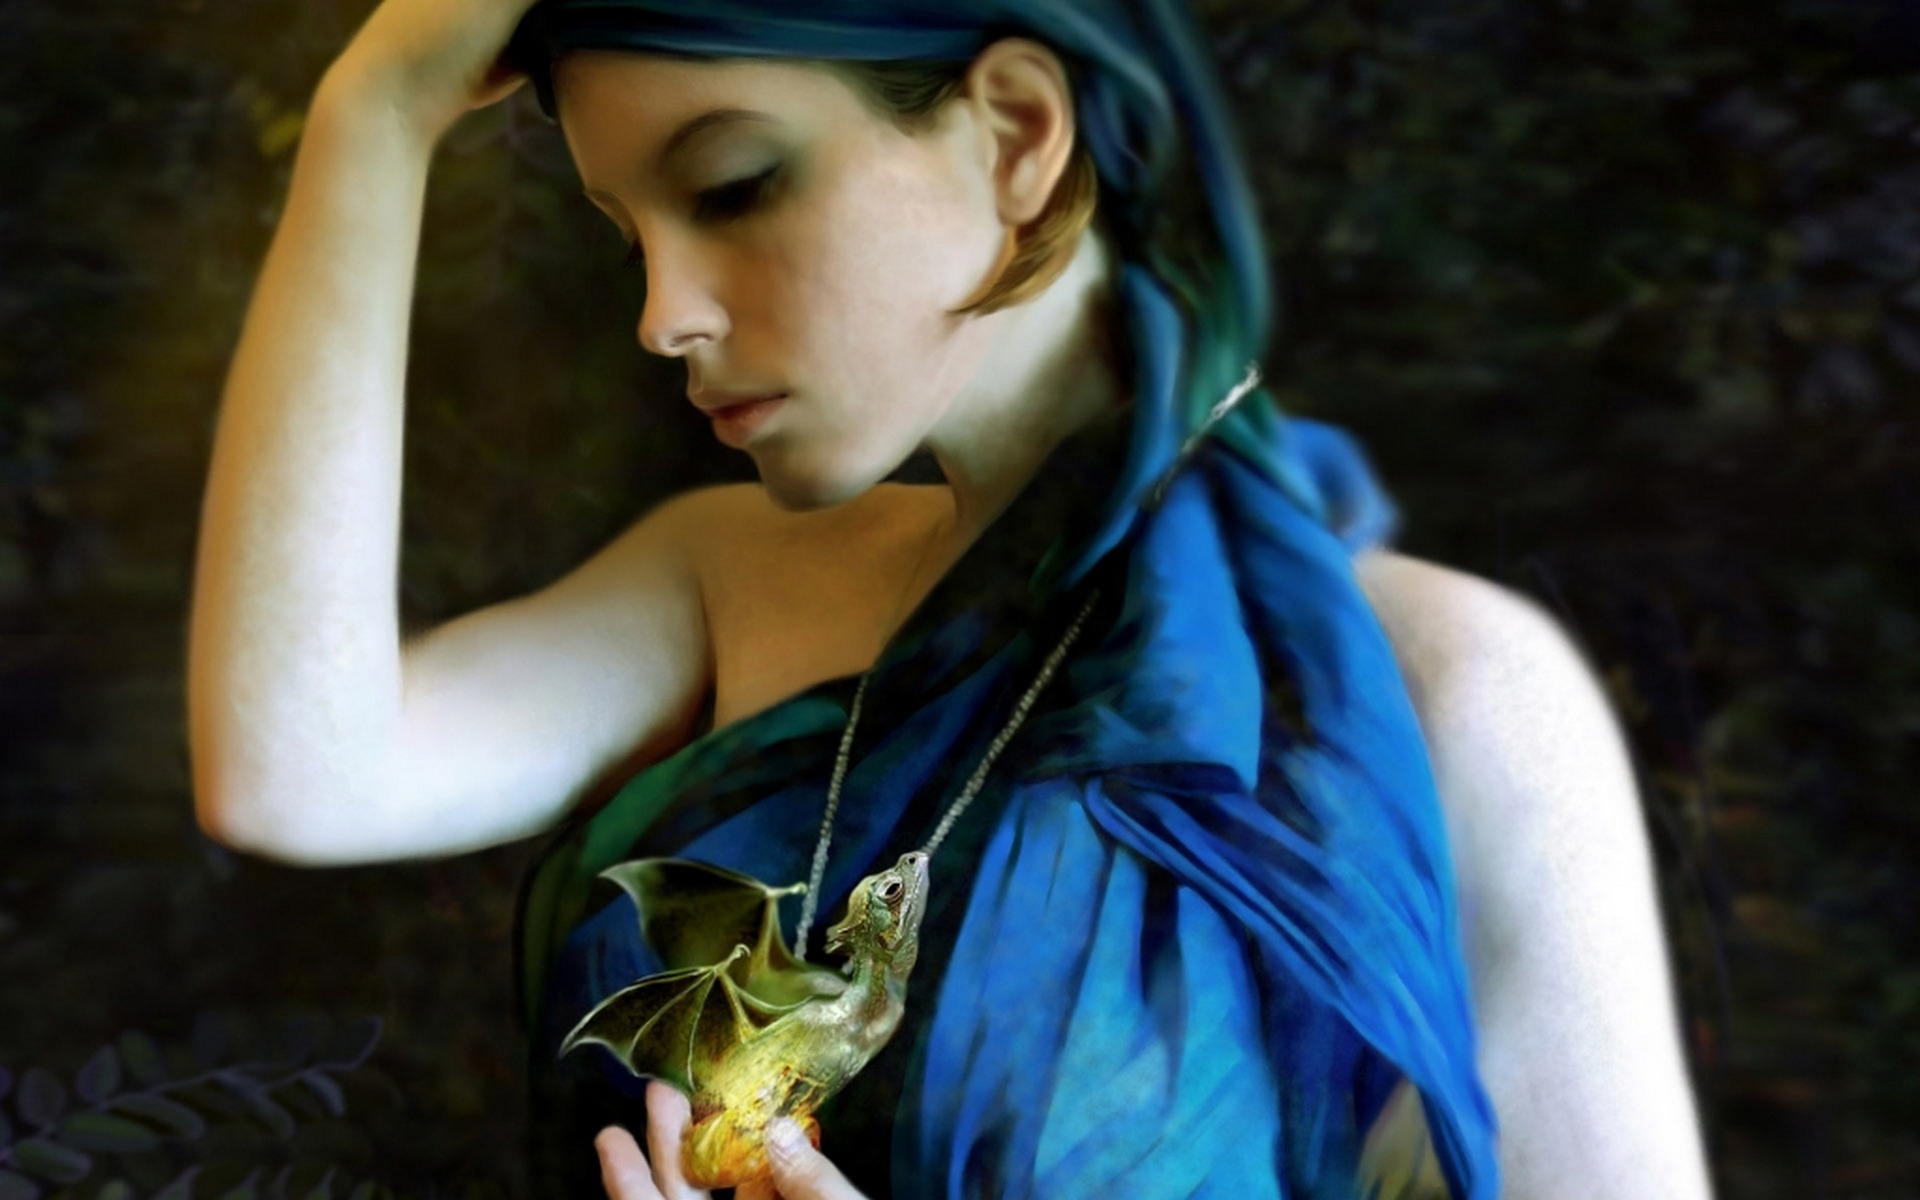 Girl with a dragon necklace